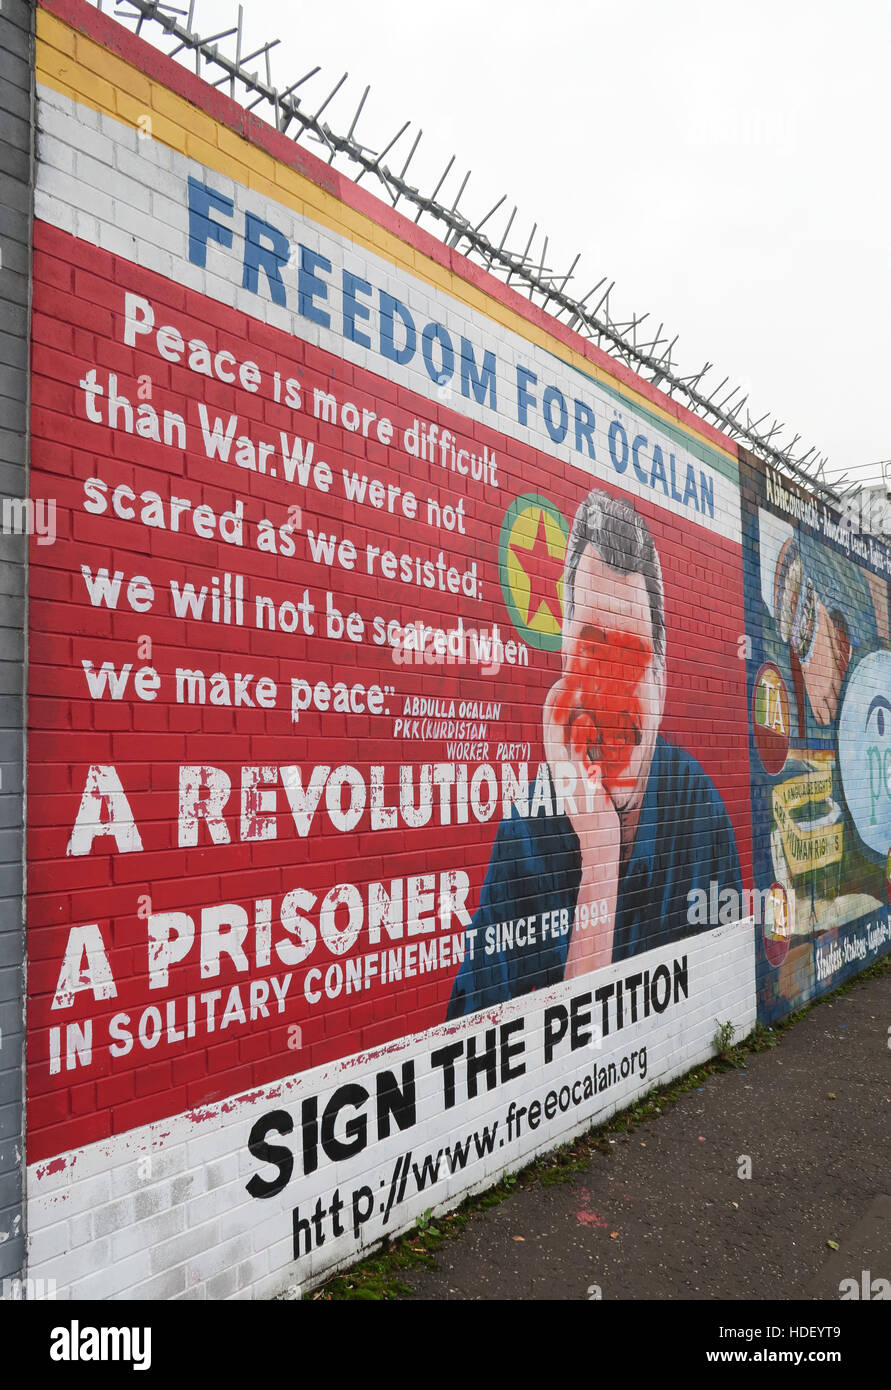 International Peace Wall,Cupar Way,West Belfast,Northern Ireland,UK,International,Peace,Wall,Cupar,Freedom,For,Ocalan,petition,prisoner,revolutionary,Öcalan,PKK,Turkish-born,PKK,Kurdistan Workers Party,founder,Abdullah Öcalan,Abdullah,Öcalan,mural,Peace Is More Difficult Than war,GoTonySmith,@HotpixUK,Tony,Smith,UK,GB,Great,Britain,United,Kingdom,Irish,British,Ireland,problem,with,problem with,issue with,NI,Northern,Northern Ireland,Belfast,City,Centre,Art,Artists,the,troubles,The Troubles,Good Friday Agreement,Peace,honour,painting,wall,walls,tribute,republicanism,Fight,Justice,West,Beal,feirste,martyrs,social,tour,tourism,tourists,urban,six,counties,6,backdrop,county,Antrim,Buy Pictures of,Buy Images Of,Images of,Stock Images,Tony Smith,United Kingdom,Great Britain,British Isles